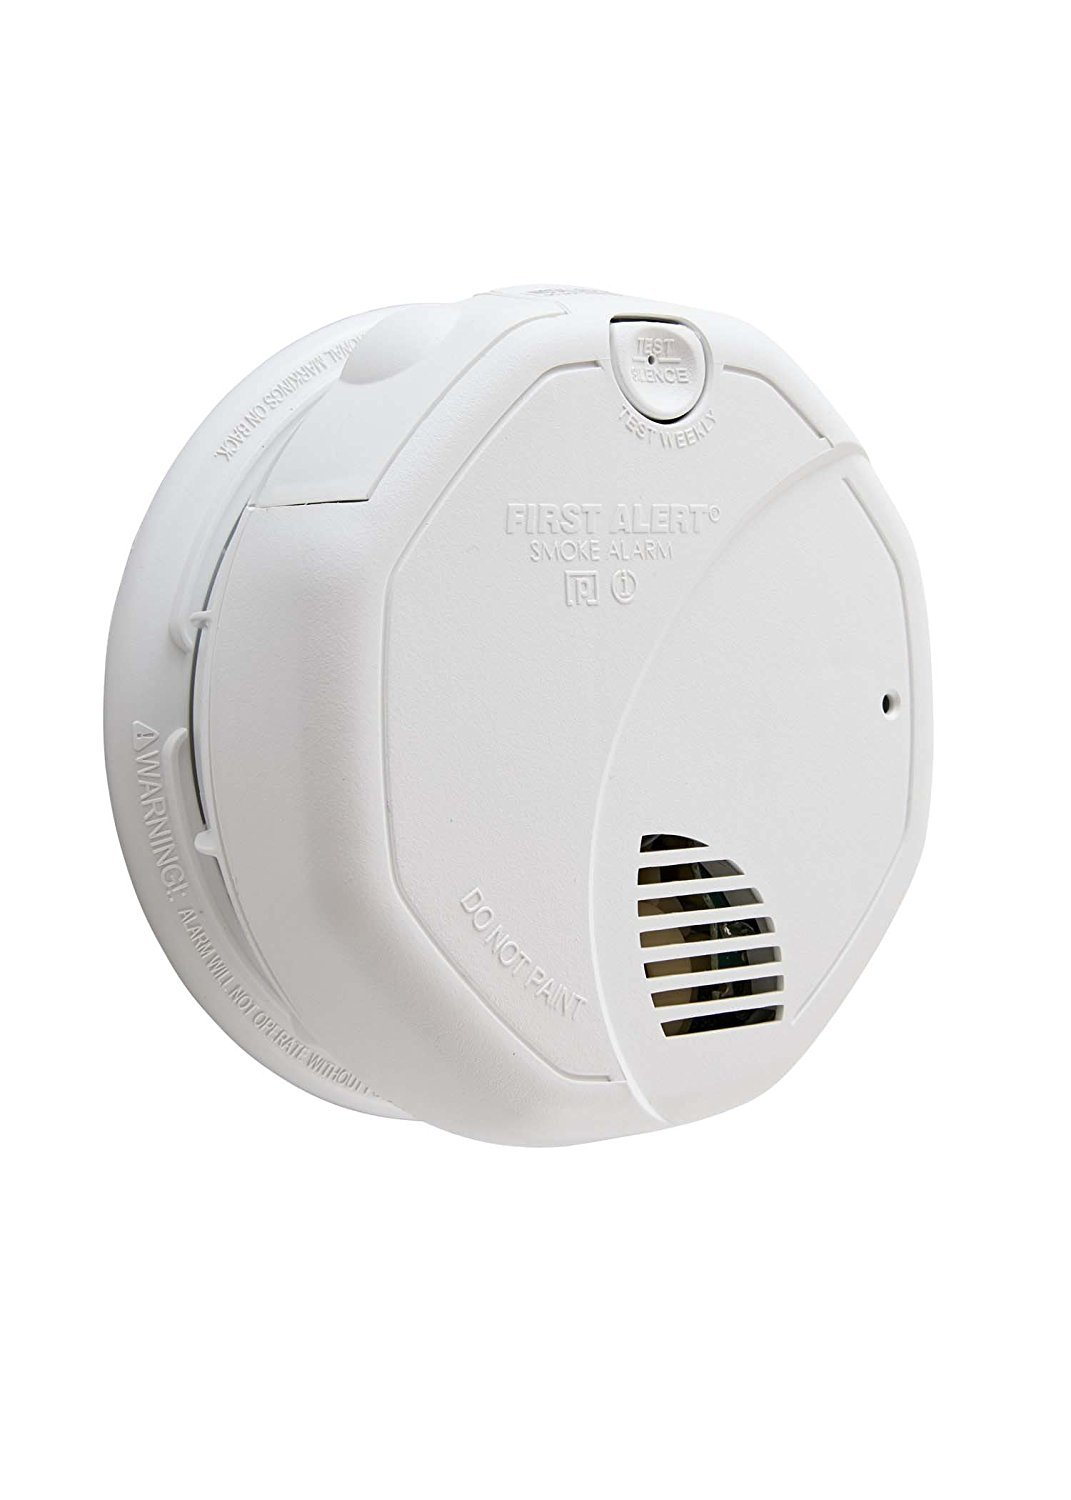 First Alert BRK 3120B-12 Hardwired Photoelectric and Ionization Smoke Alarm with Battery Backup 12 Pack by First Alert (Image #2)